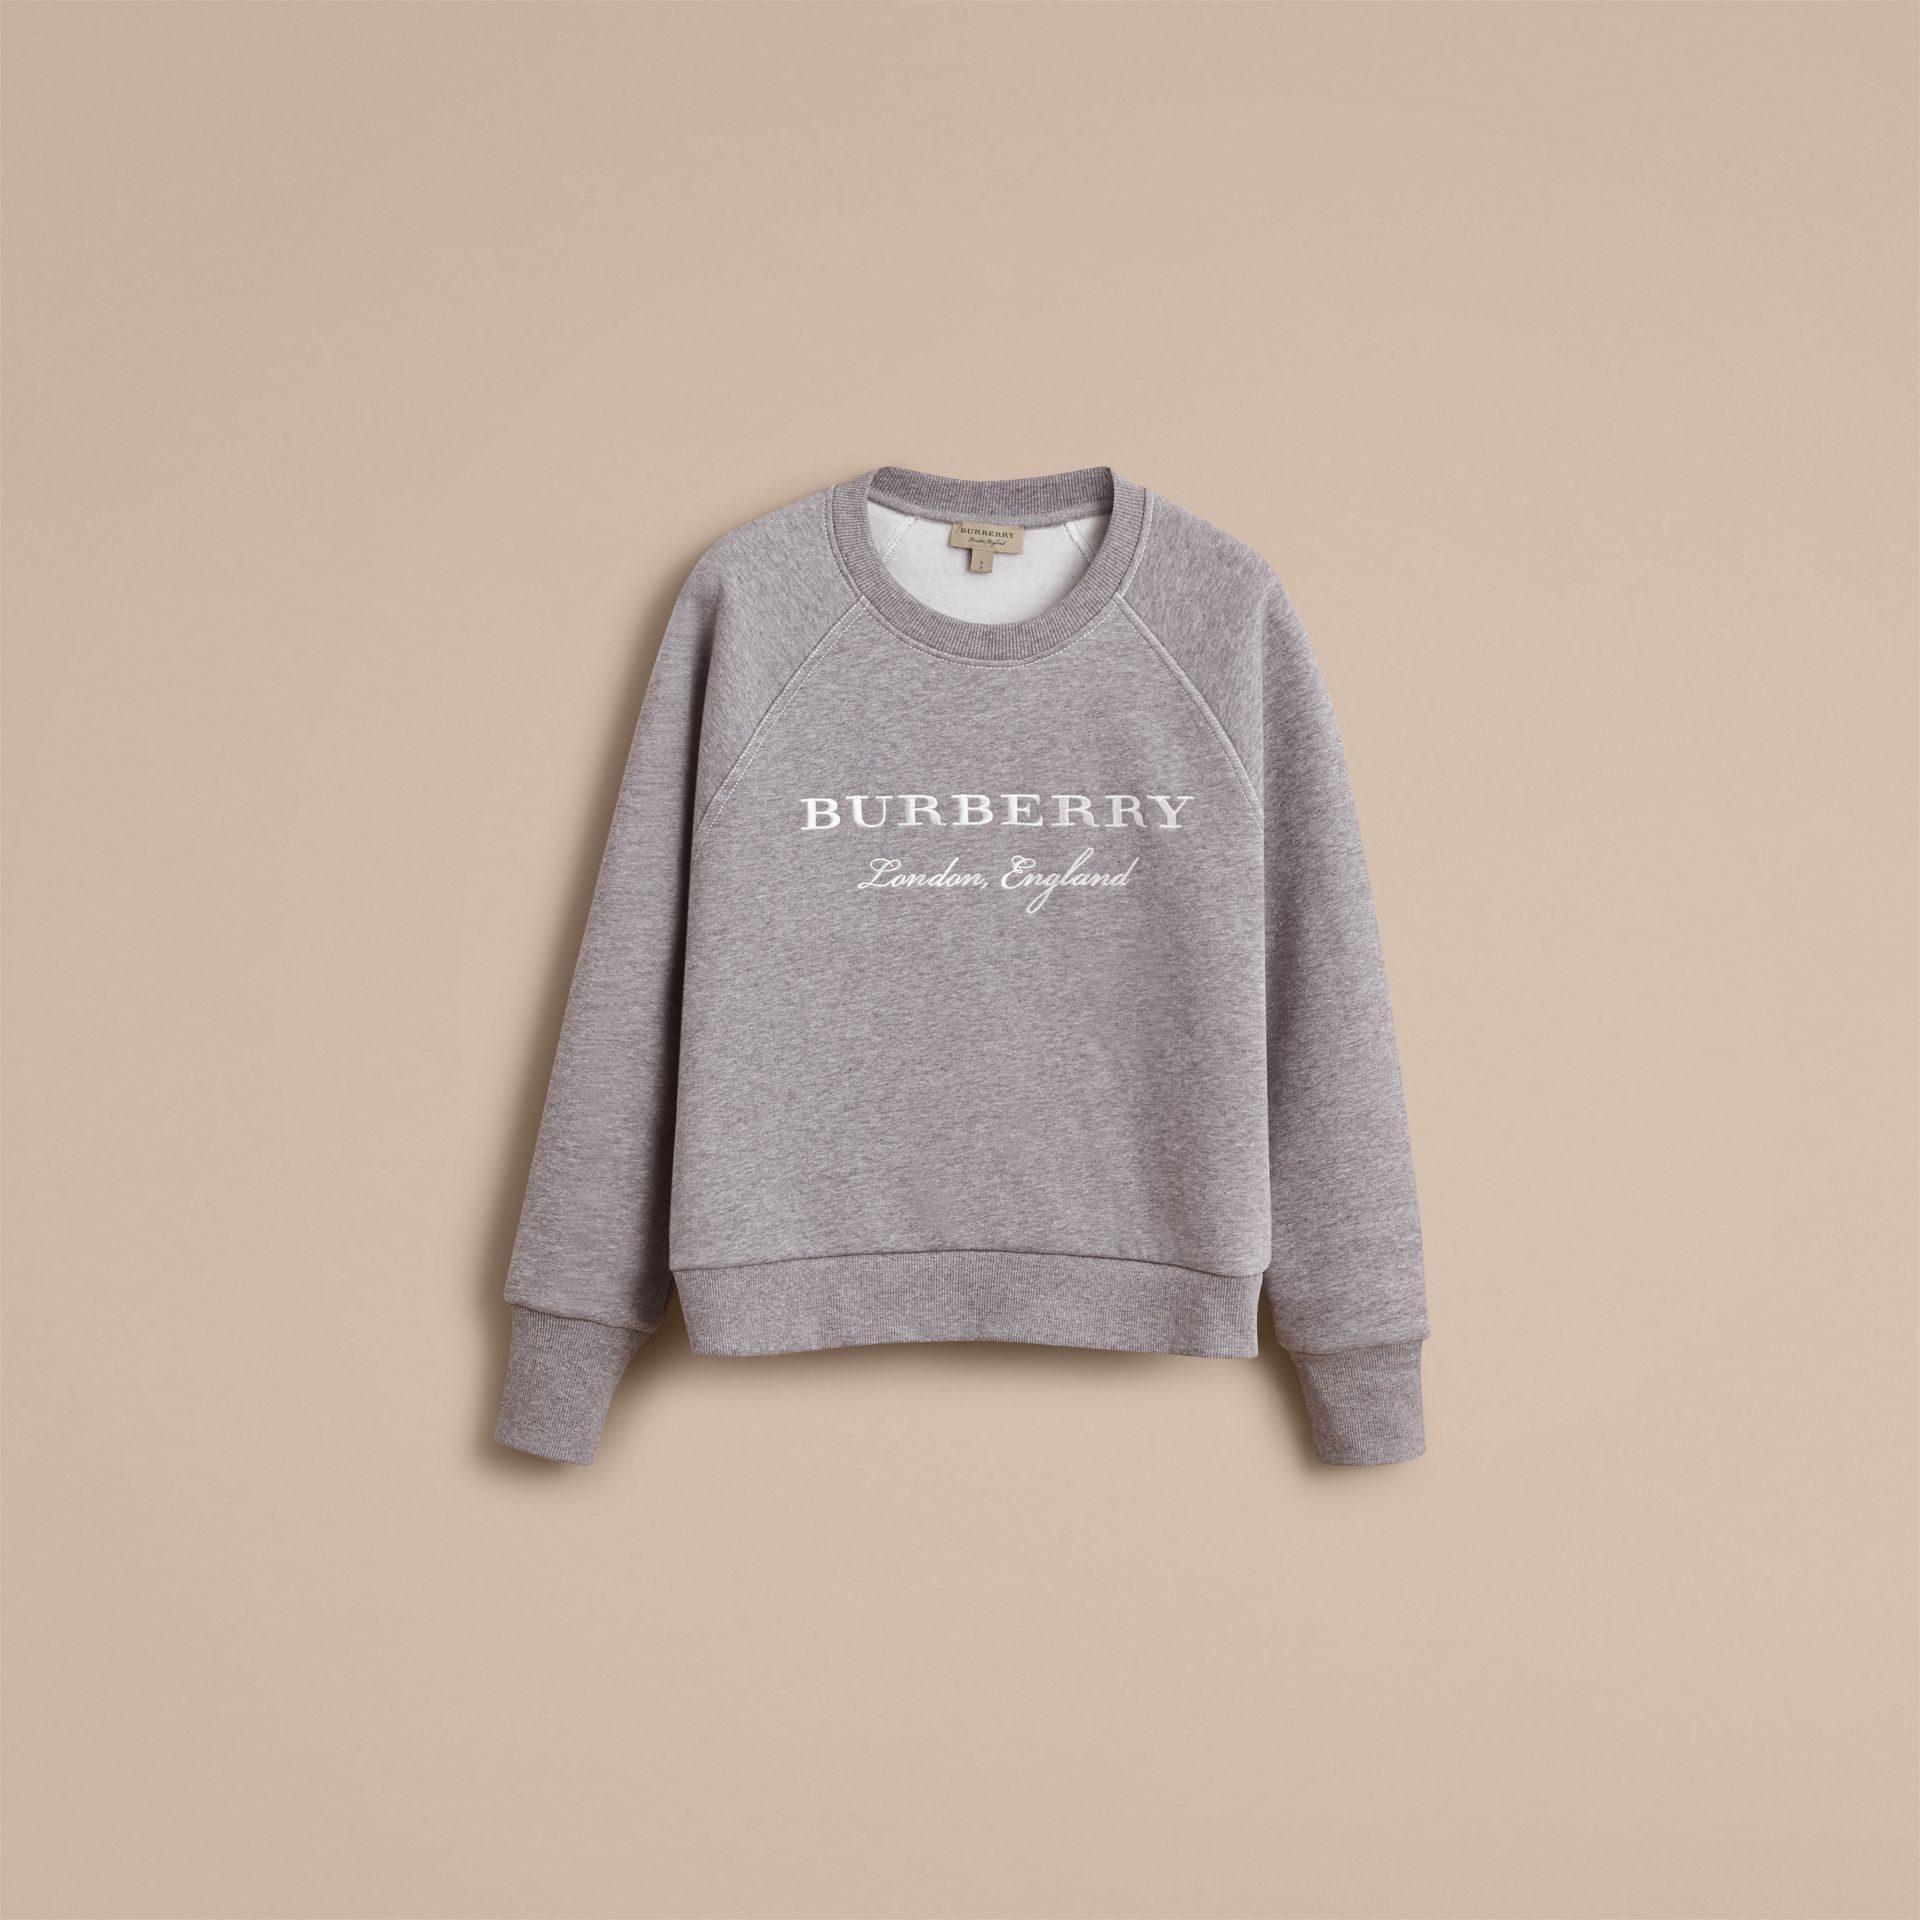 Embroidered Cotton Blend Jersey Sweatshirt in Pale Grey Melange - Women | Burberry - gallery image 4